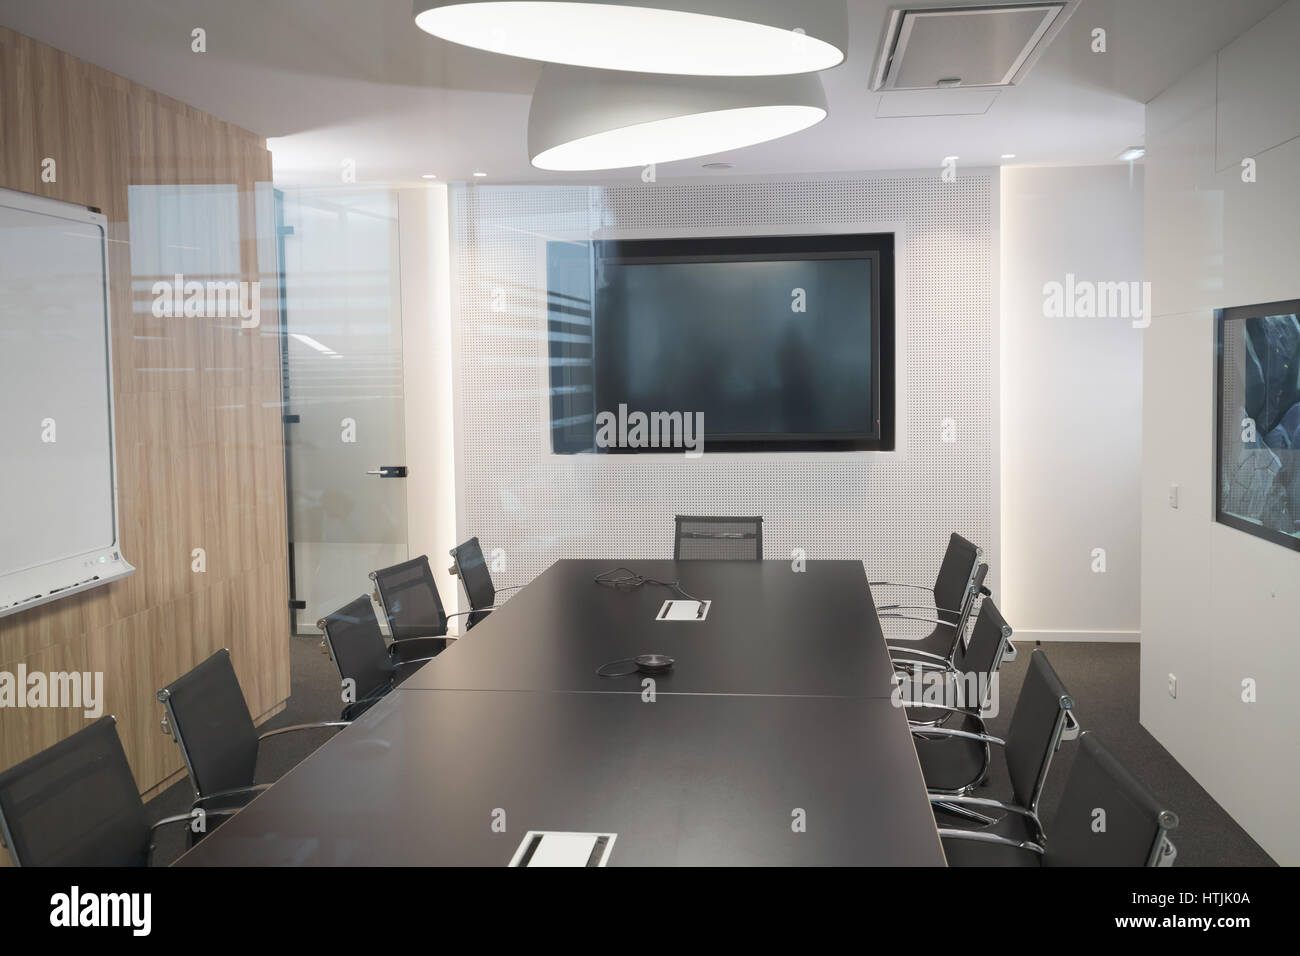 Modern business meeting room with armchairs and desk - Stock Image